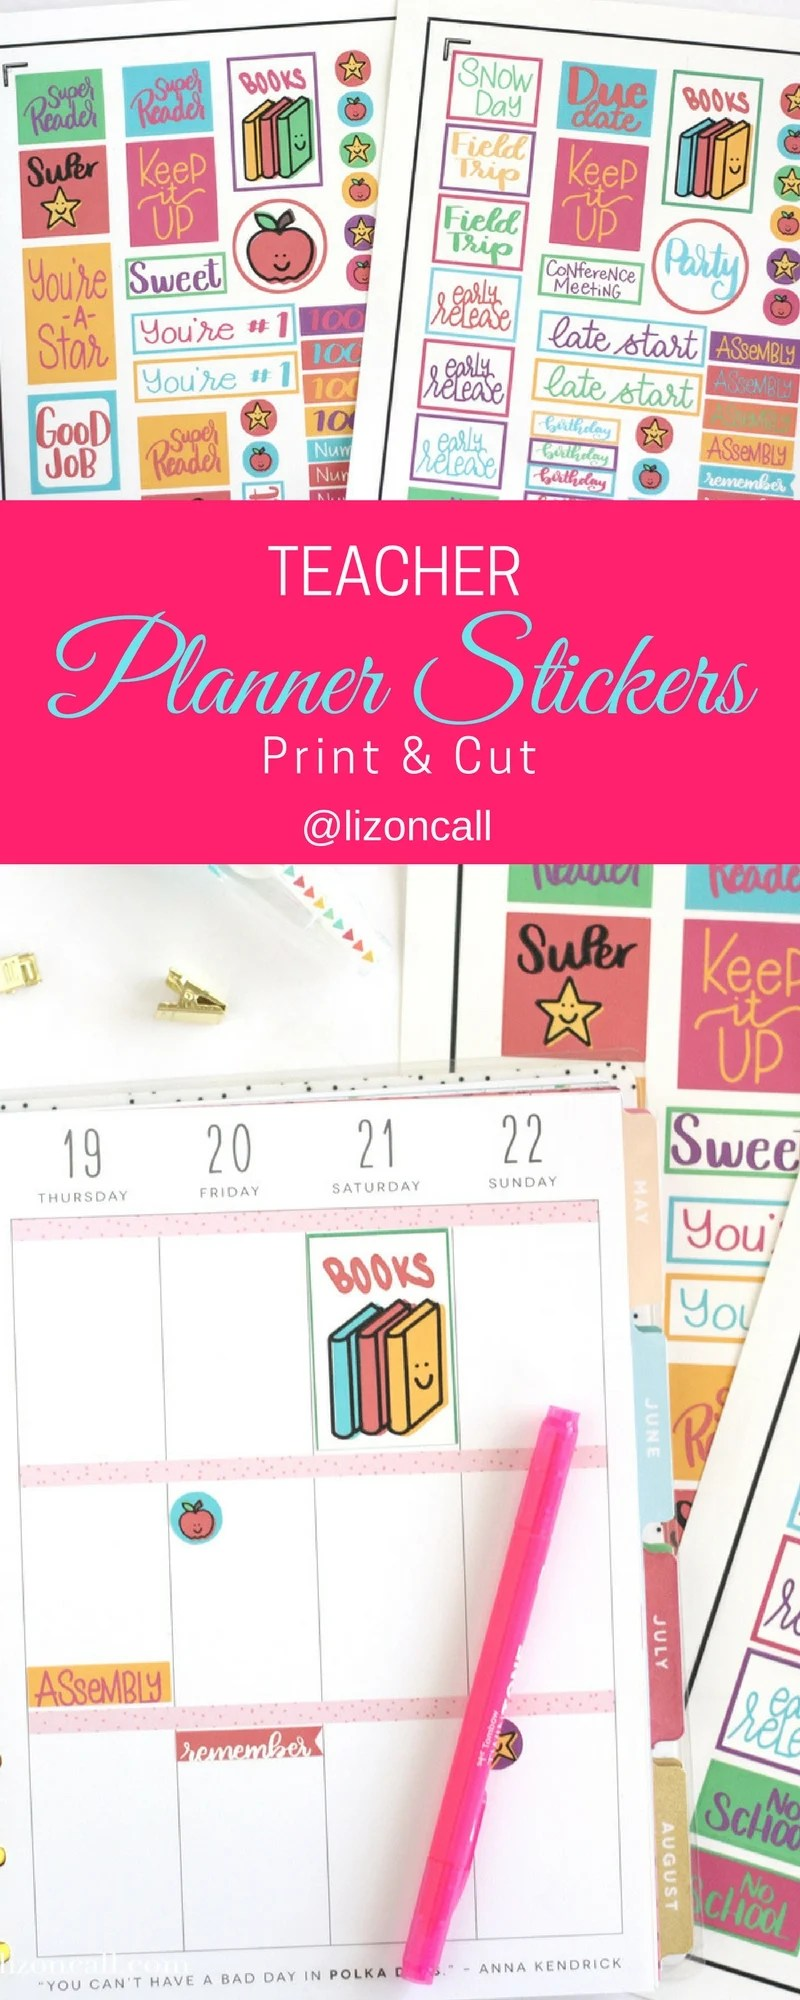 Free Teacher Planner Stickers Print and Cut - Liz on Call